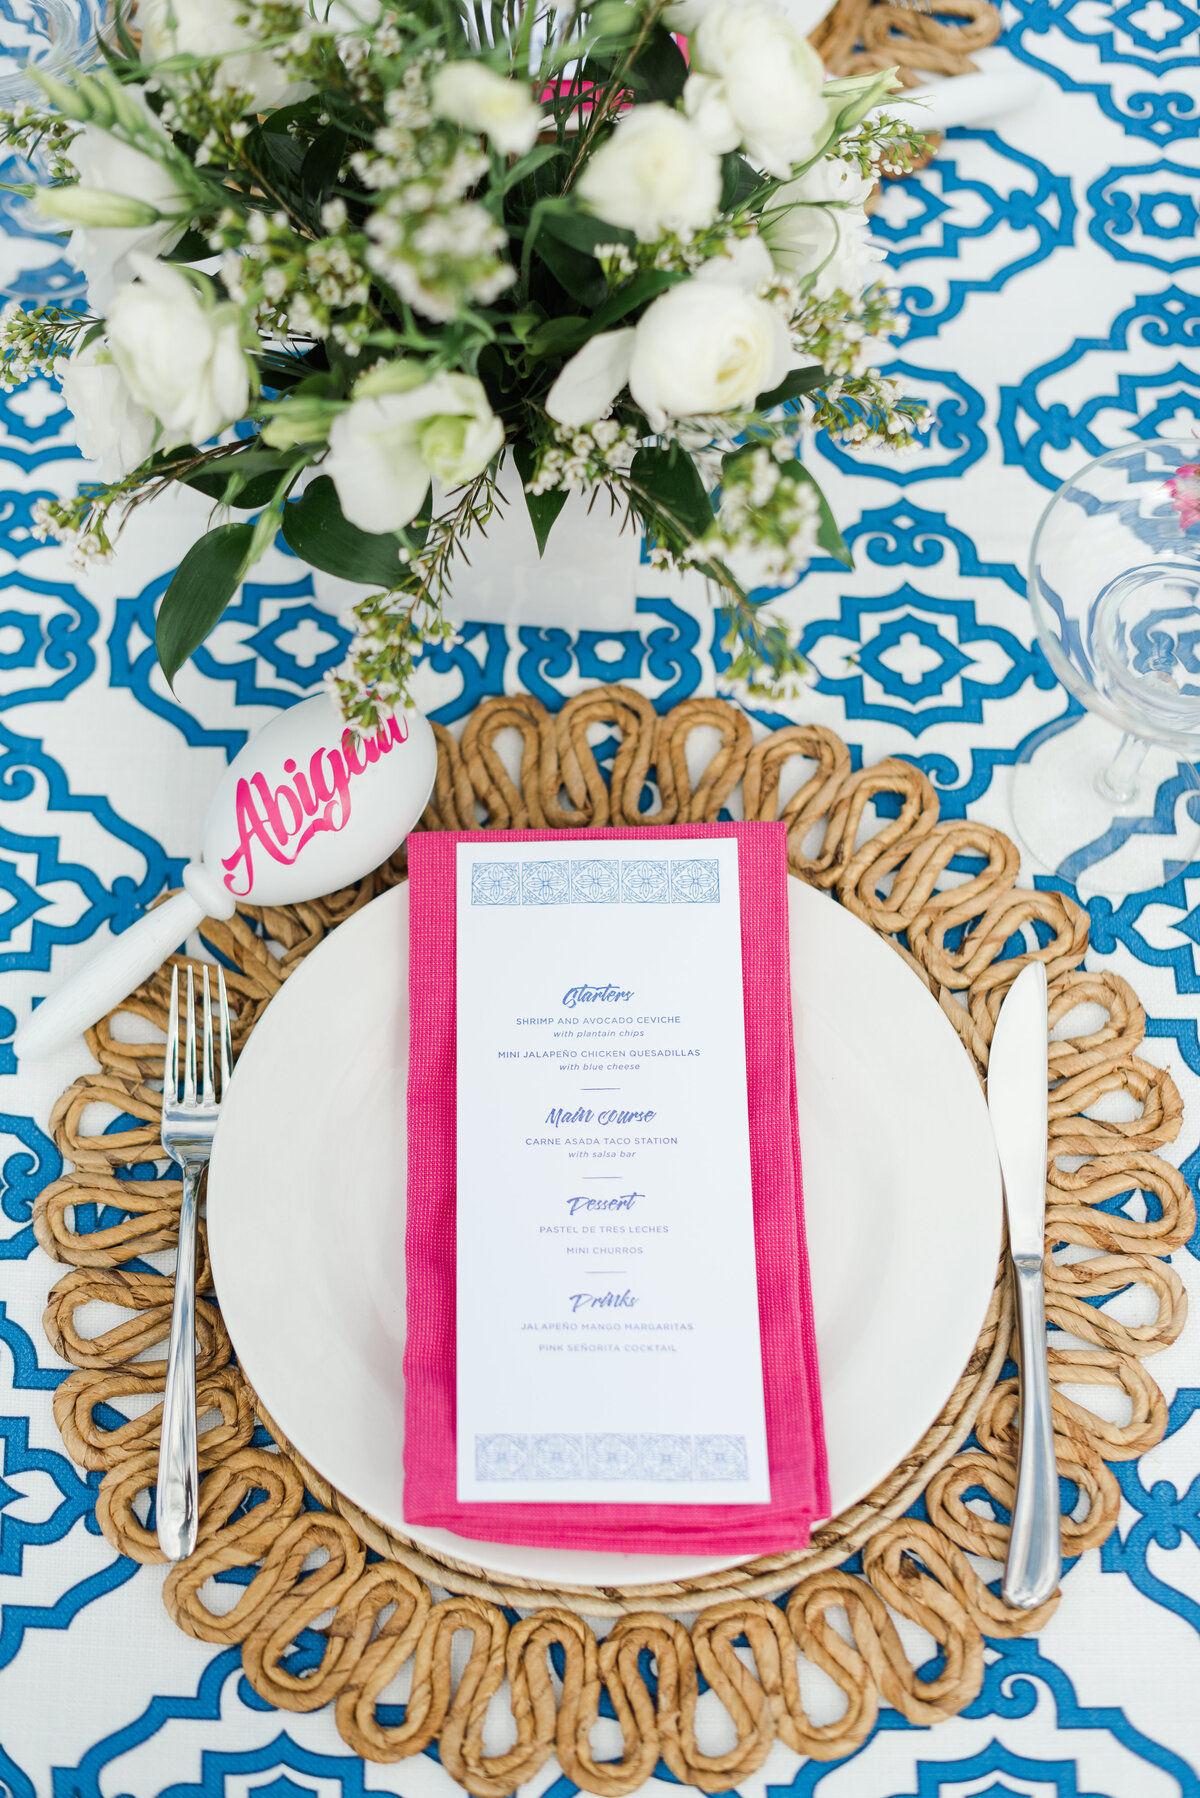 Fiesta-Party-Inspiration-by-Event-Prep-Cassandra-Clair-Photograpy-Amanda-Collins-24